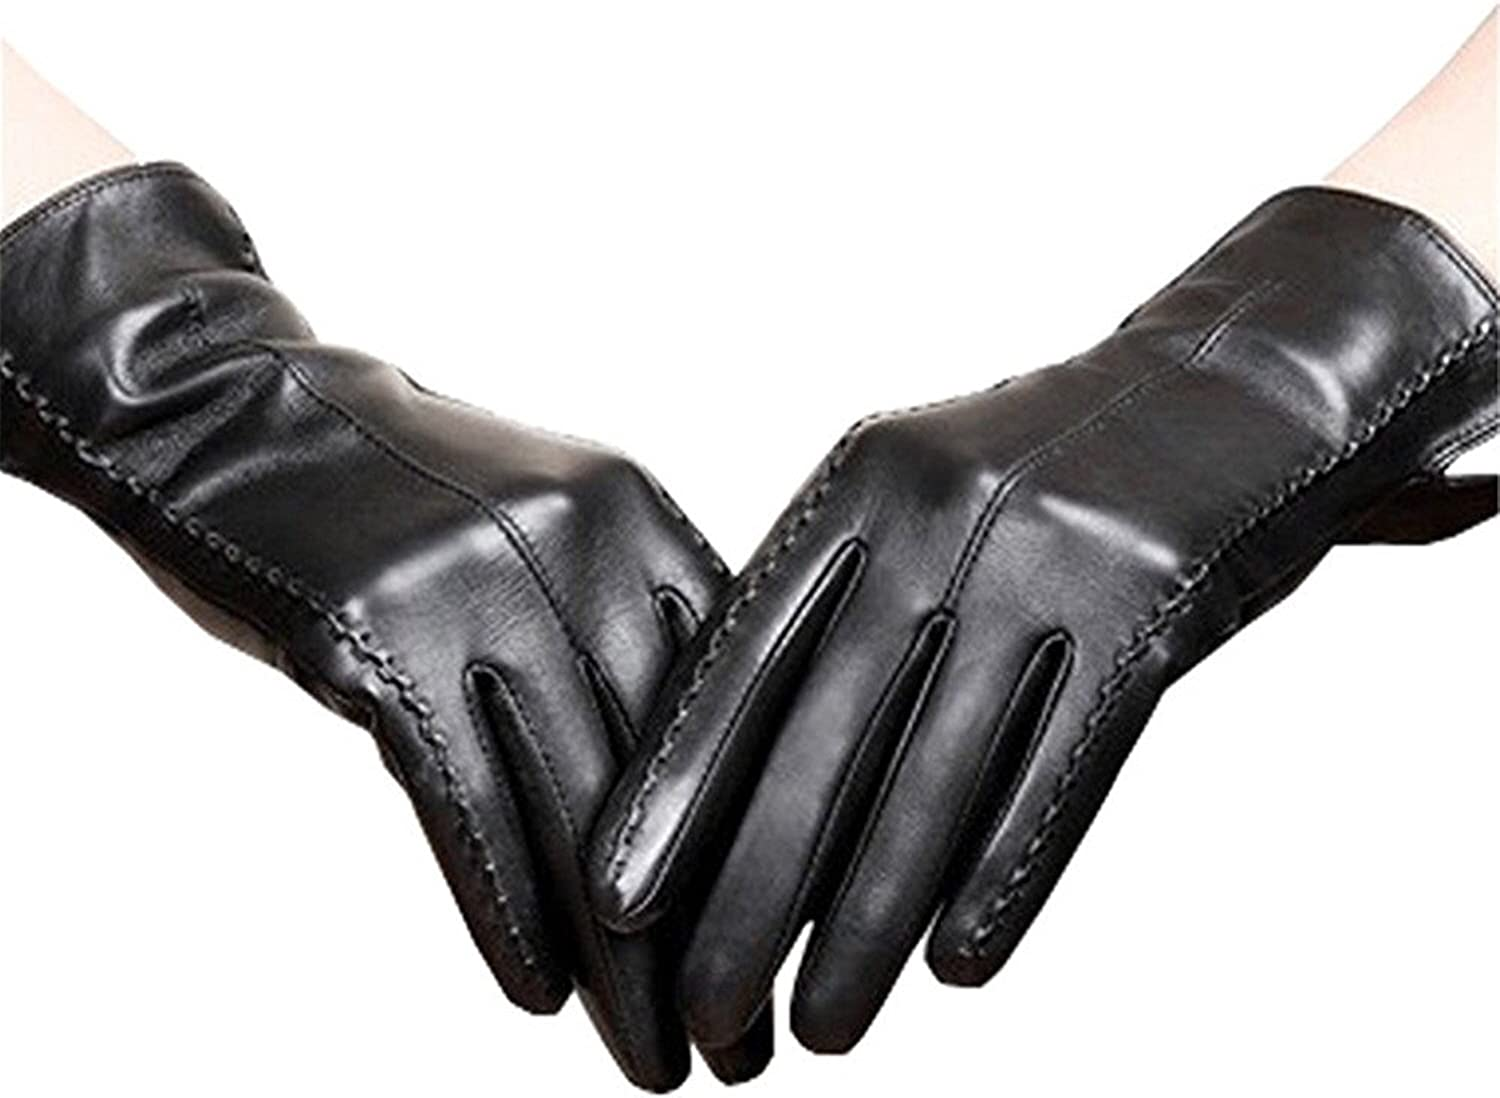 Women's Black Leather Gloves Touchscreen Texting Driving Winter Warm PU Leather Gloves for Outdoor Activities